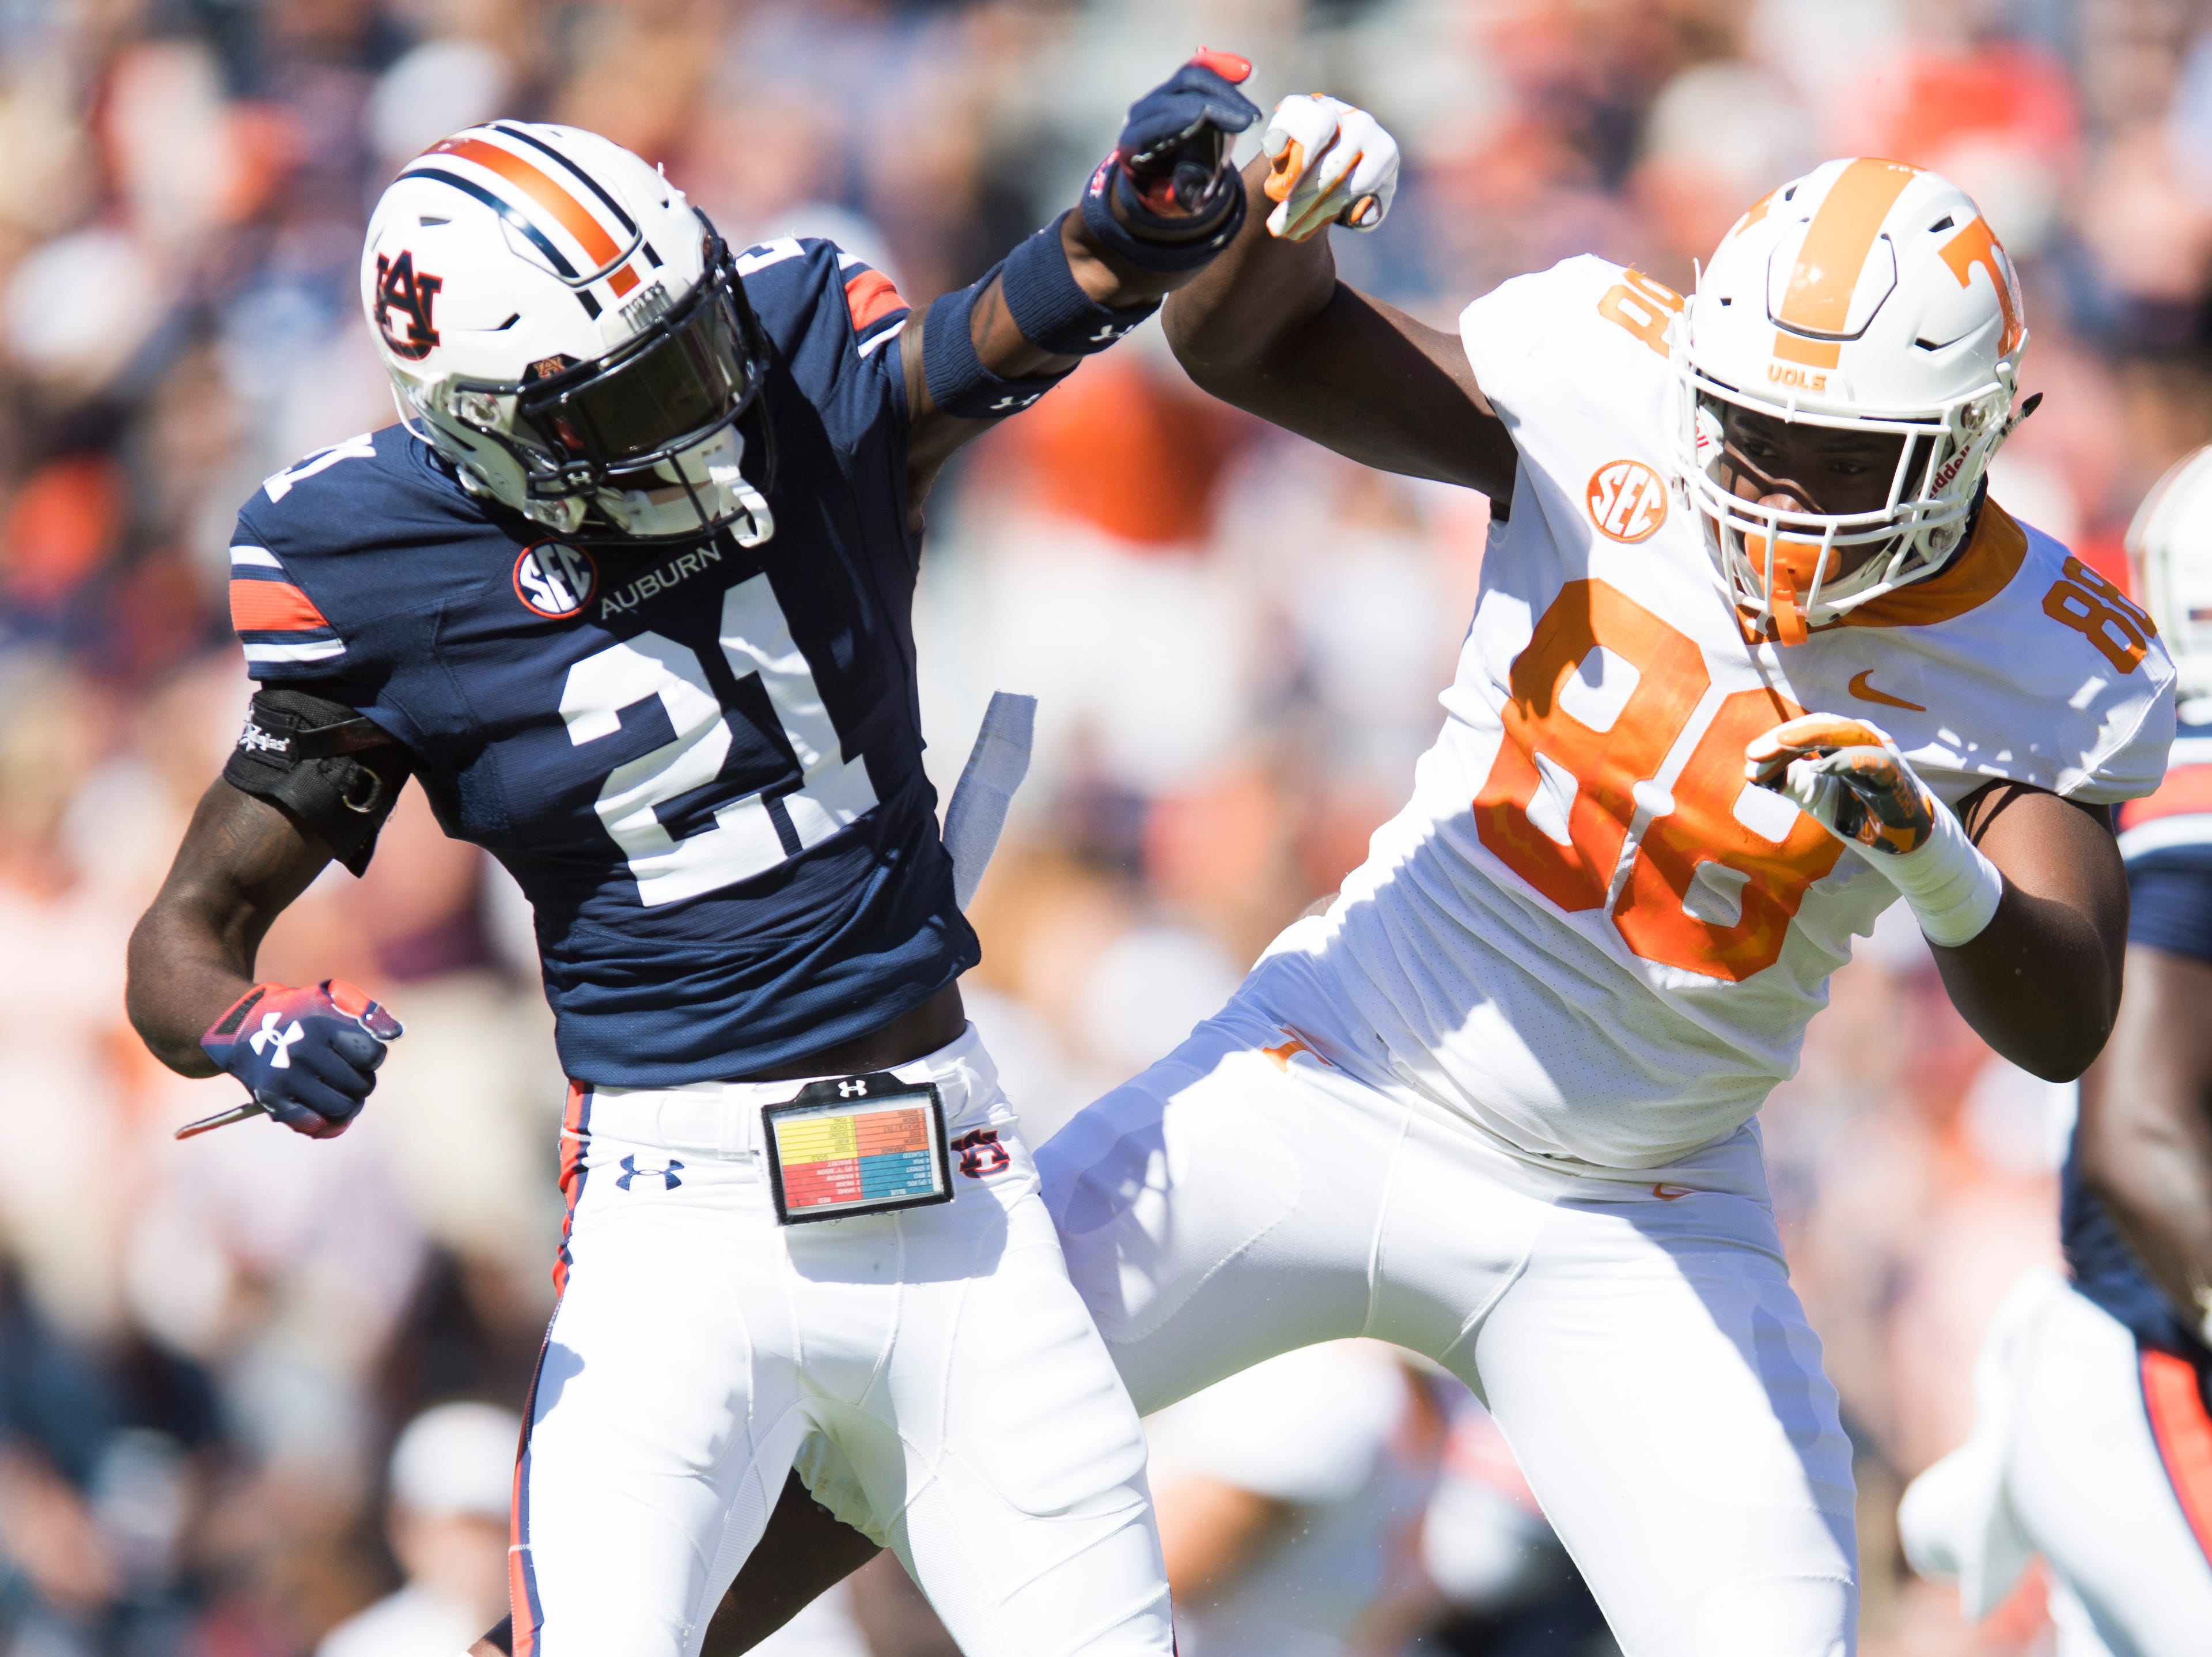 Tennessee tight end LaTrell Bumphus (88) and Auburn defensive back Smoke Monday (21) collide mid-air during a game between Tennessee and Auburn at Jordan-Hare Stadium in Auburn, Alabama on Saturday, October 13, 2018.